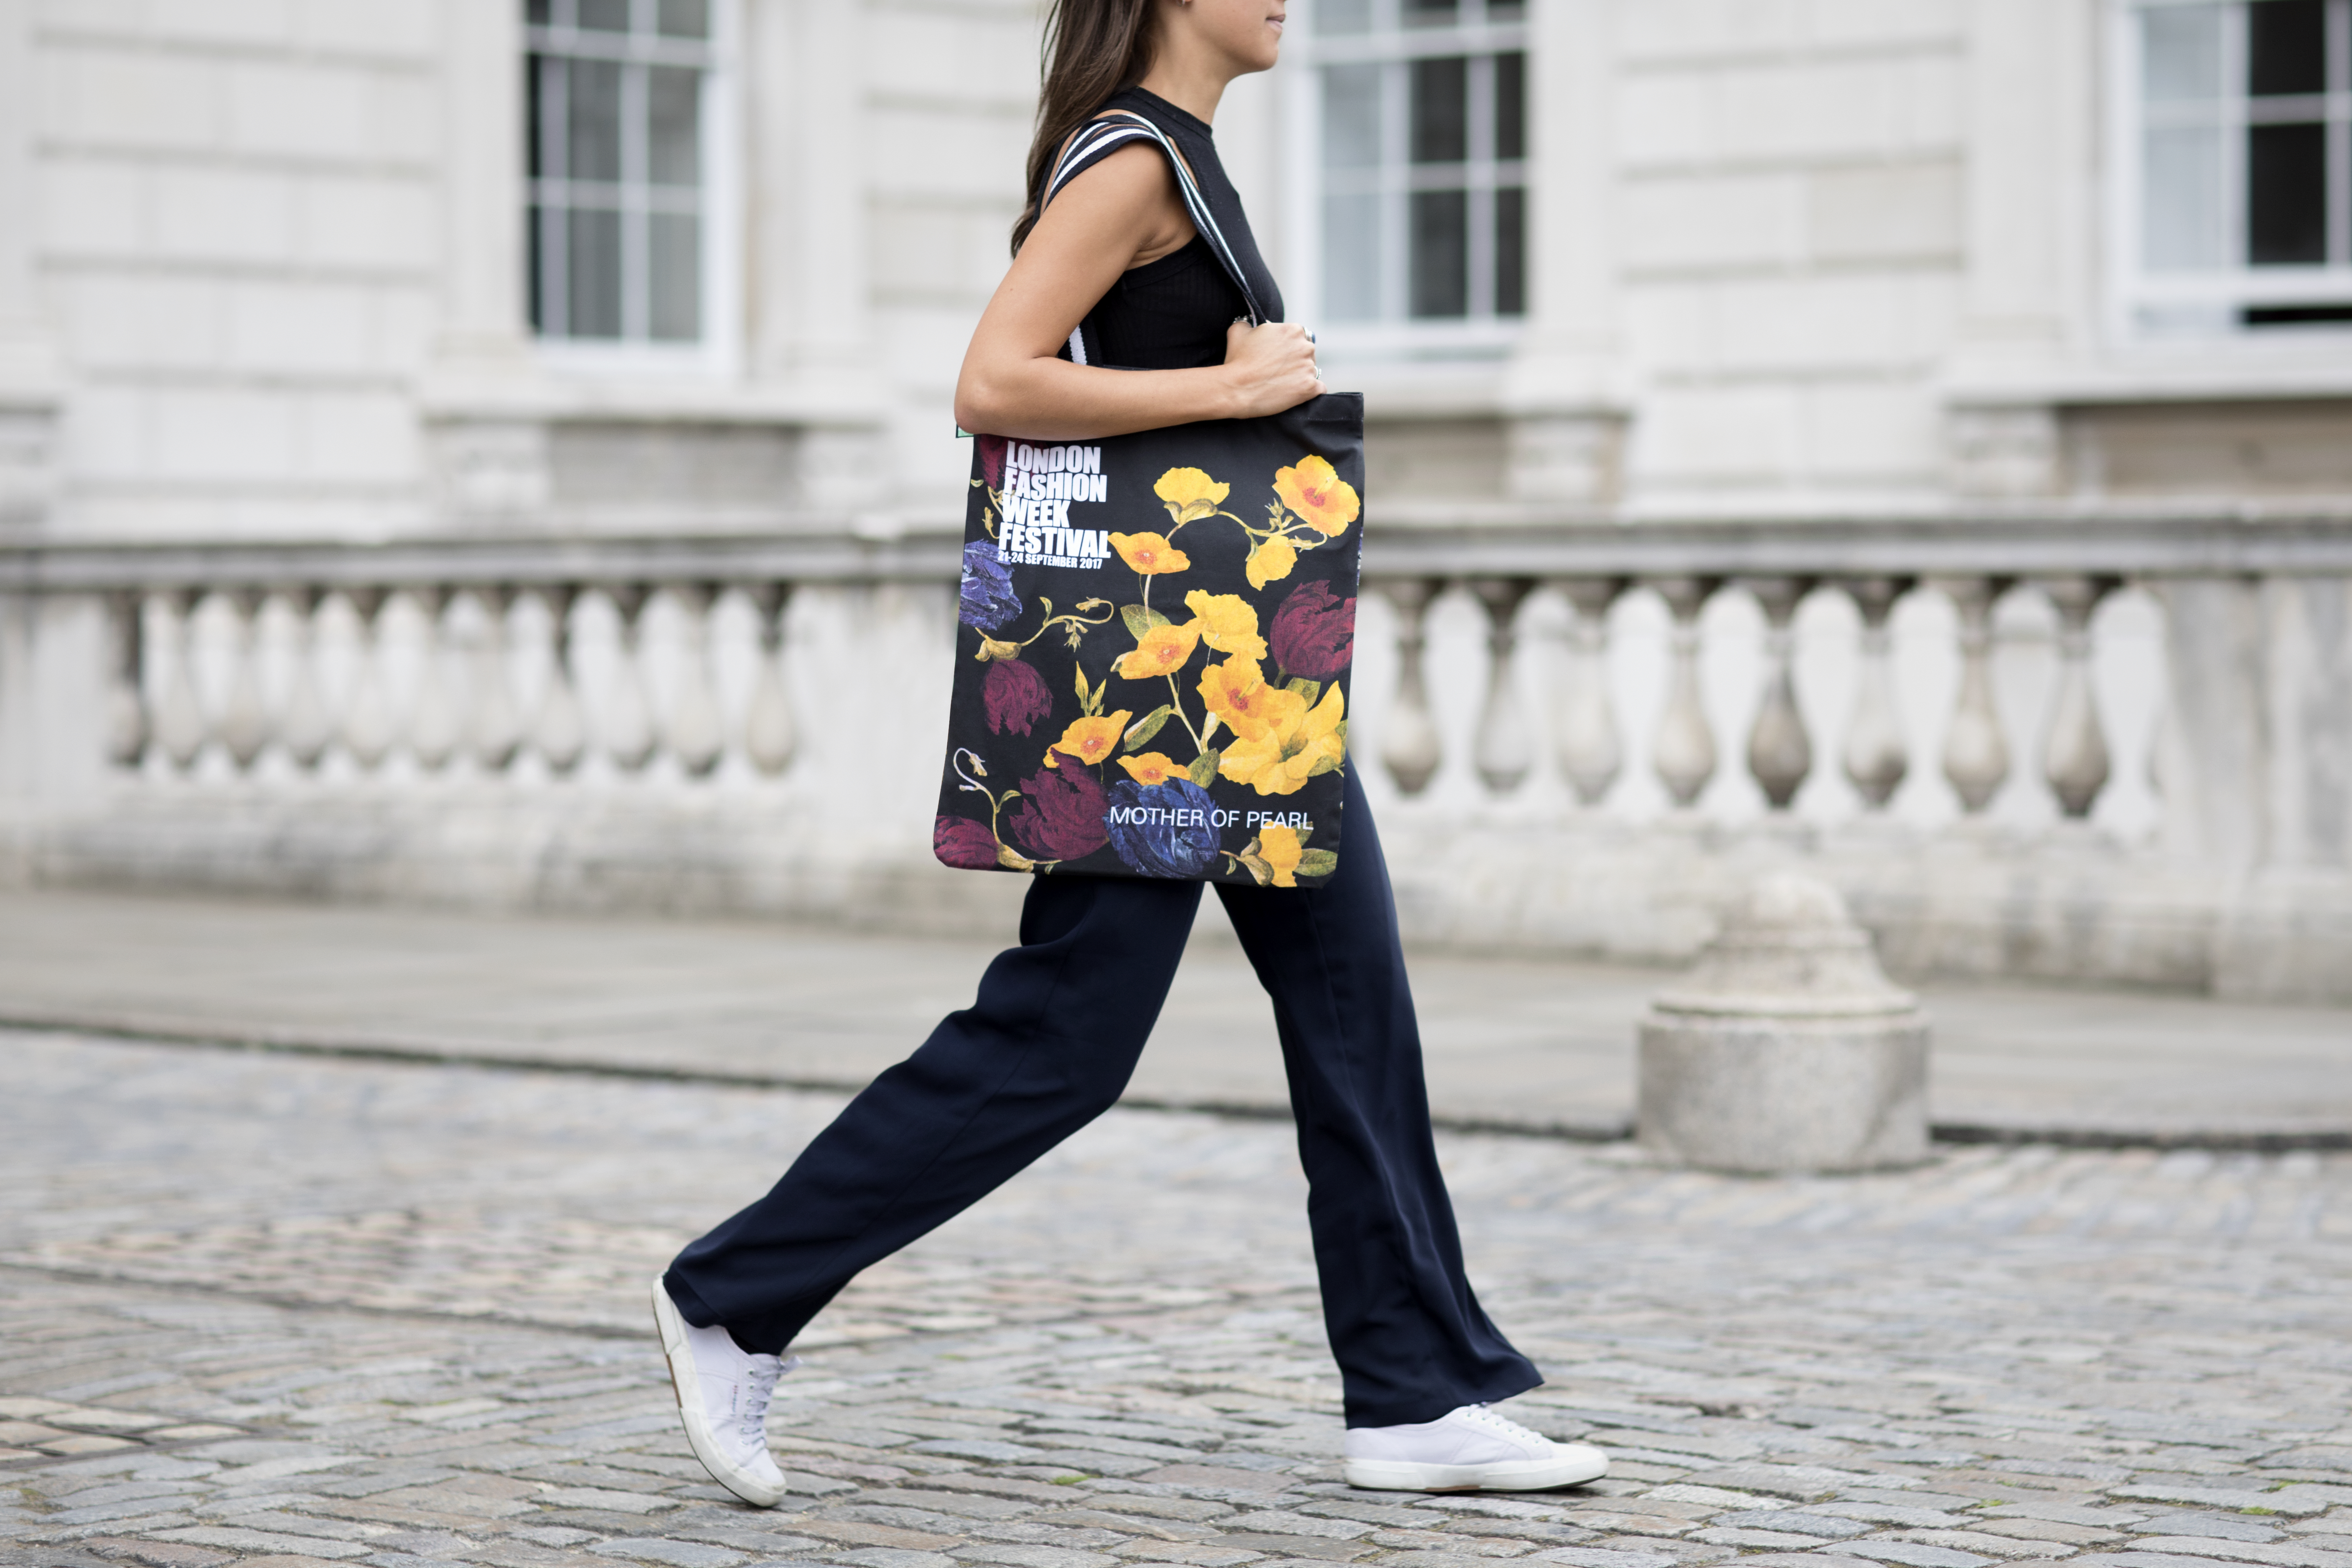 Mother Of Pearl Designs London Fashion Week Festival Limited Edition Tote